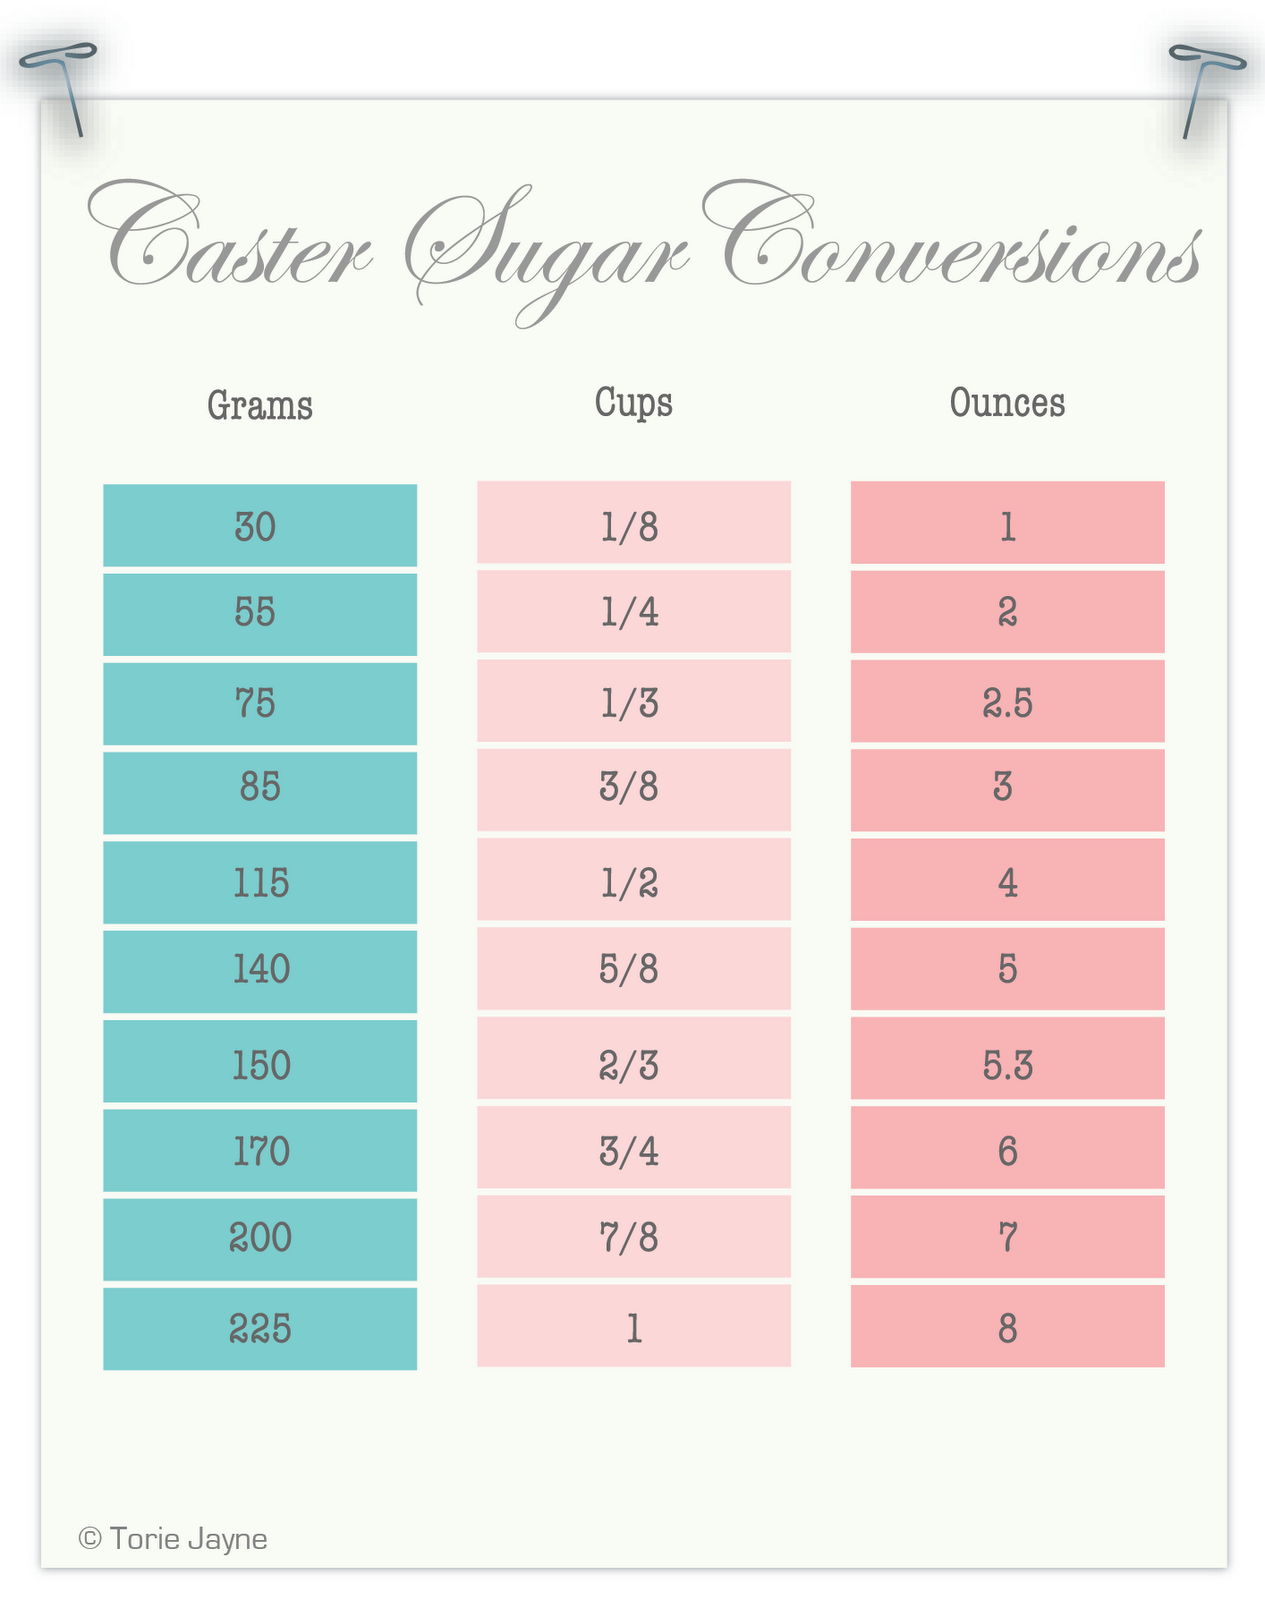 Caster Sugar Conversion Chart  WwwBakedoctorComBaking